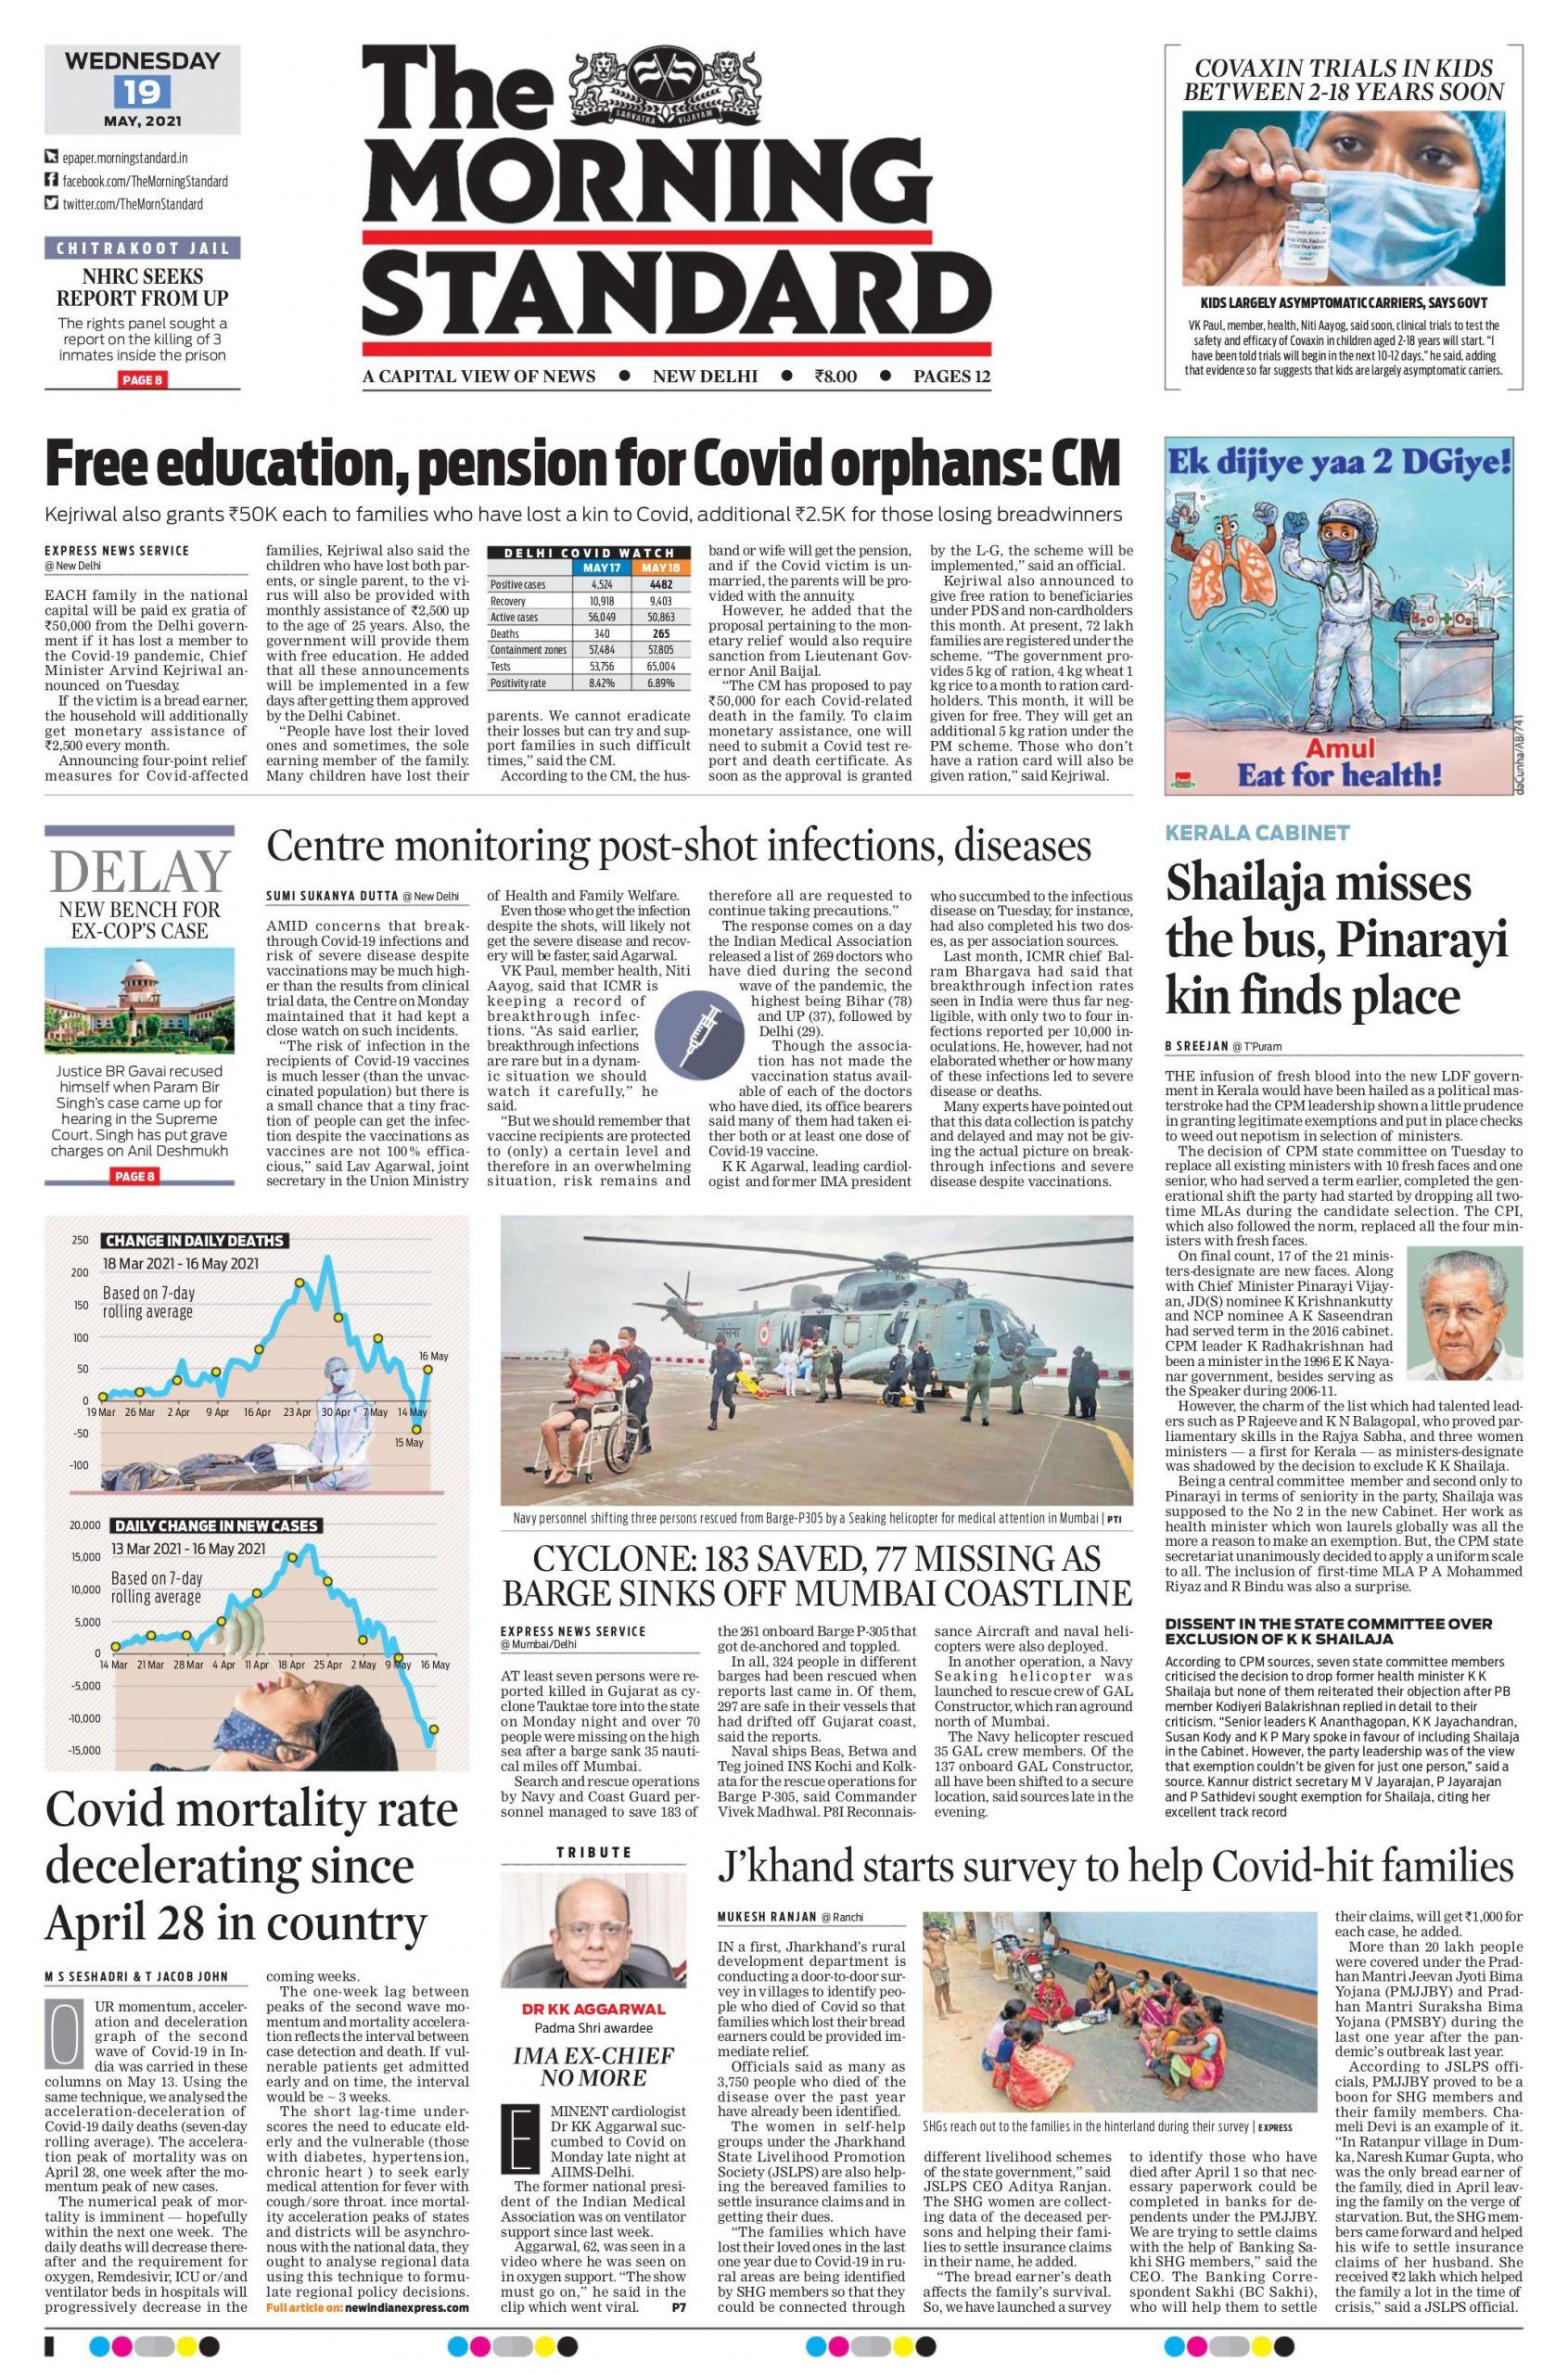 The Morning Standard 19th May 2021